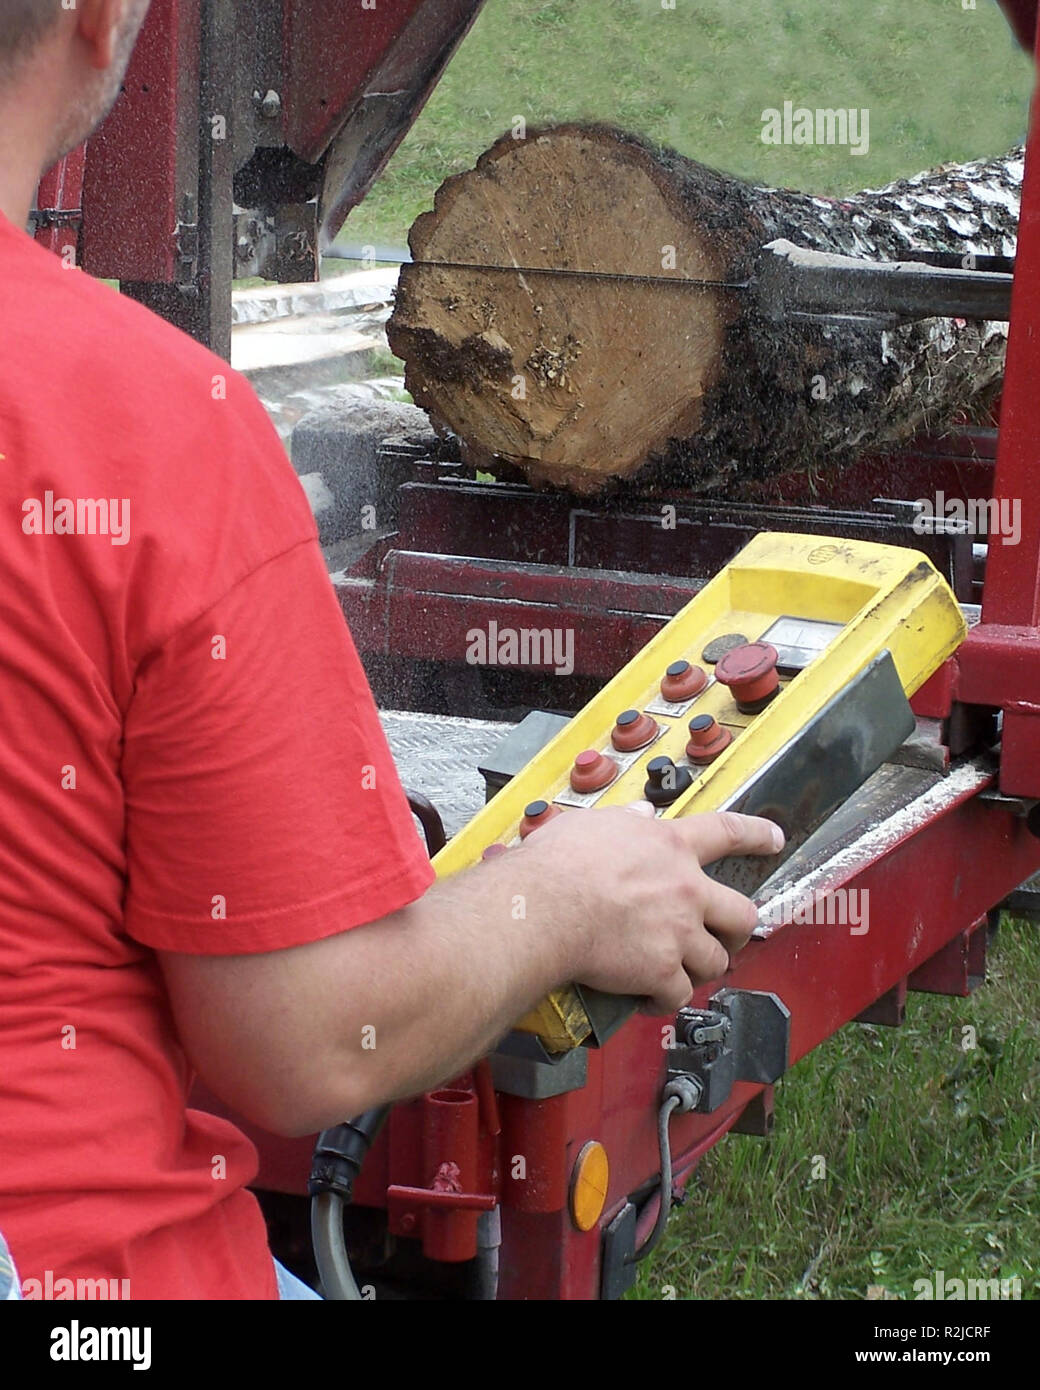 workers operated portable sawmill Stock Photo: 225369299 - Alamy